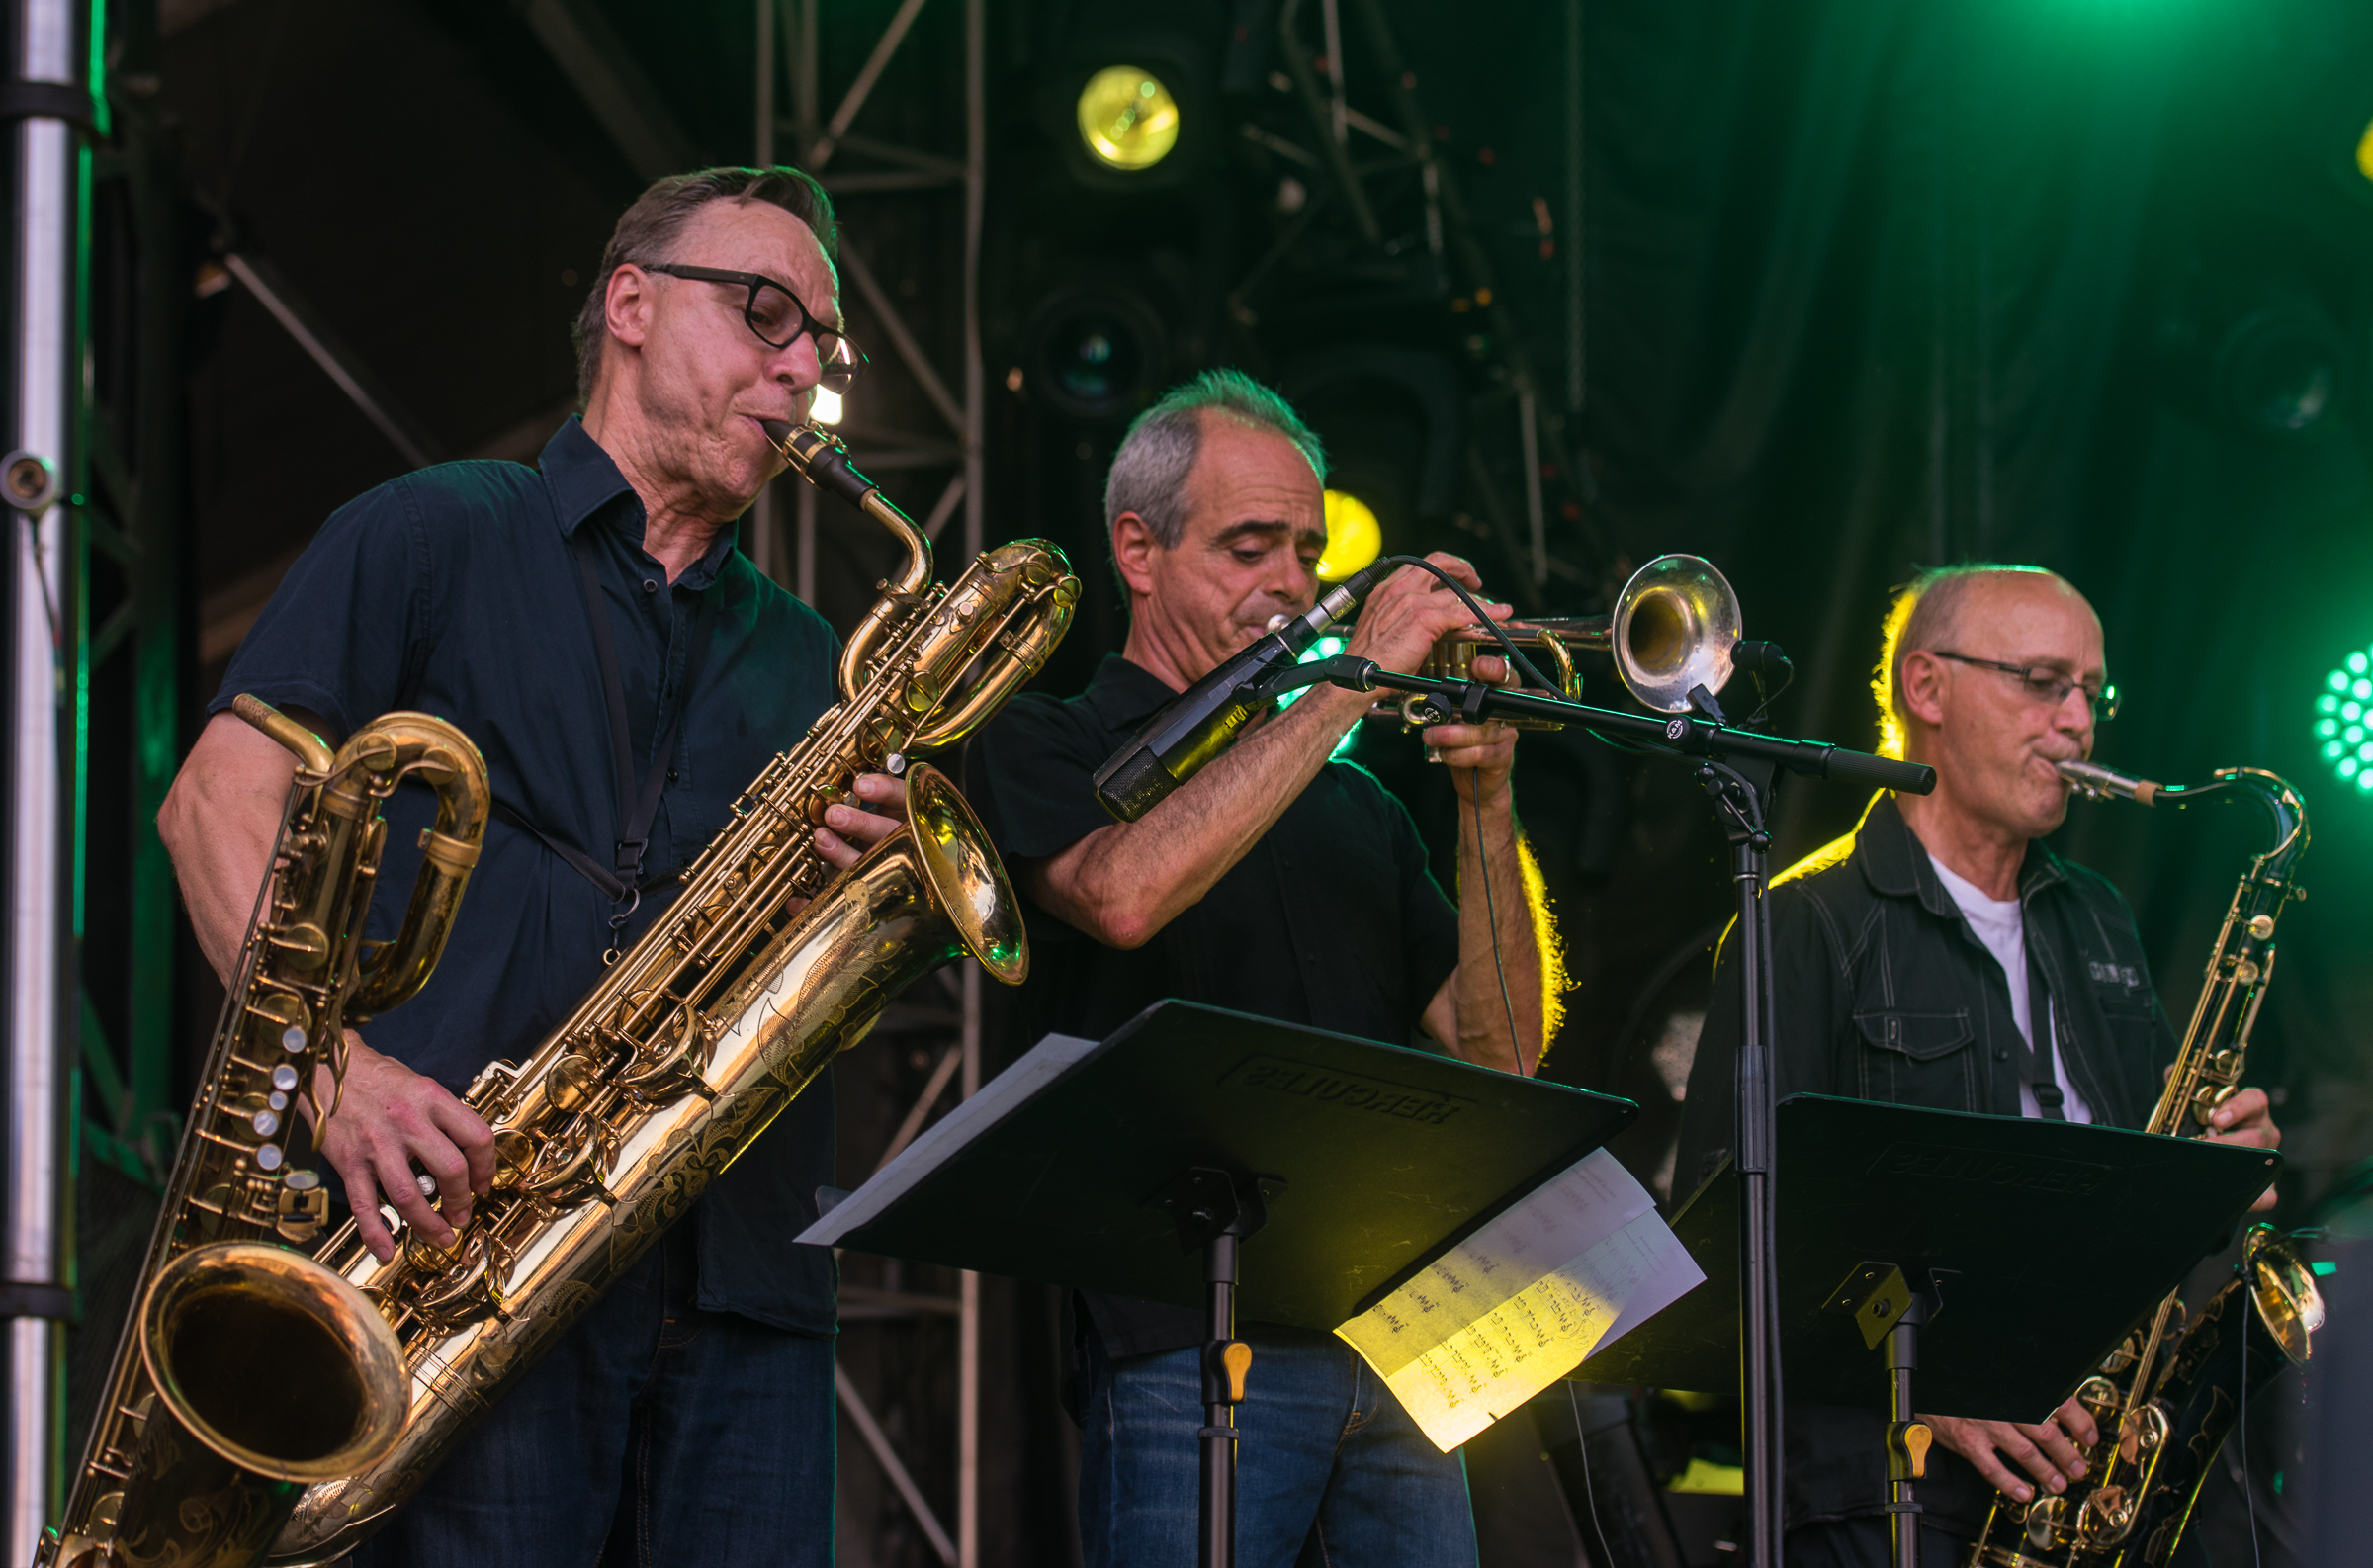 Ron Dilauro, Jean Frechette And Richard Beaudet With Jerry Granelli At The Montreal International Jazz Festival 2018